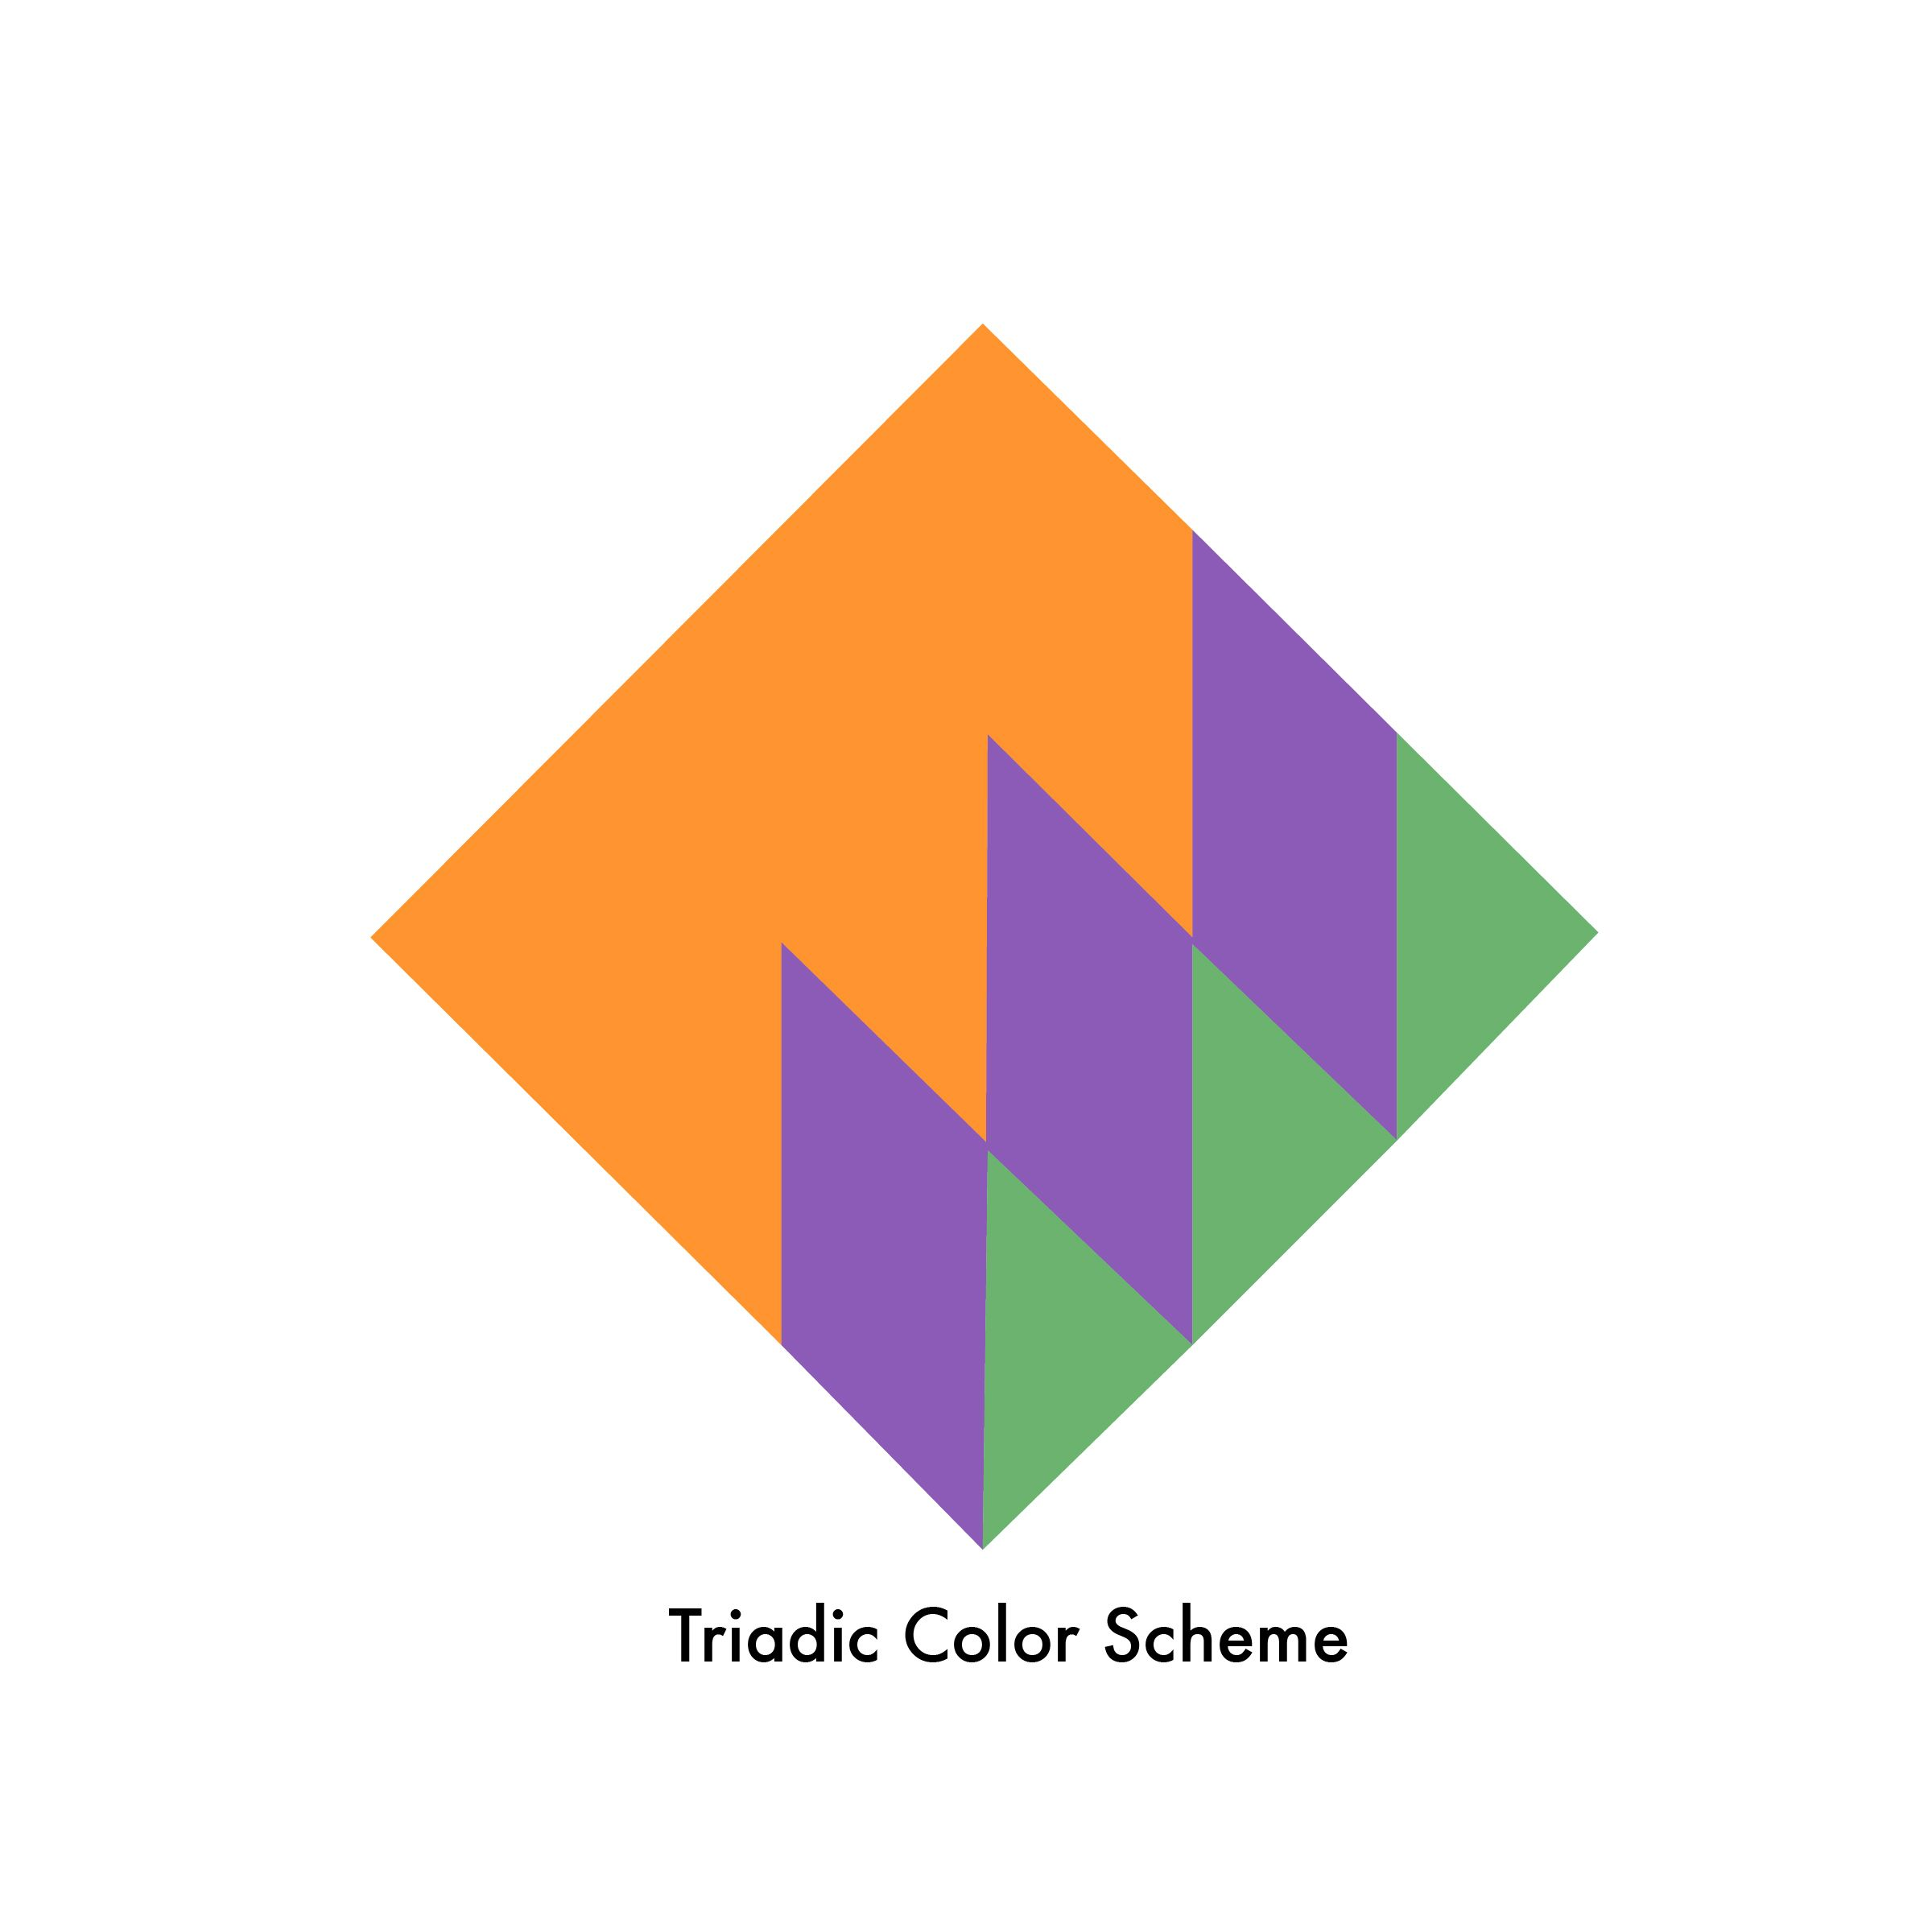 This triadic color design utilizes yellow orange and a dark shade of - Triadic Color Scheme This Occurs When Colors That Are Evenly Spaced Around The Color Wheel Are Used Here I Chose To Use The Color Scheme Of Orange